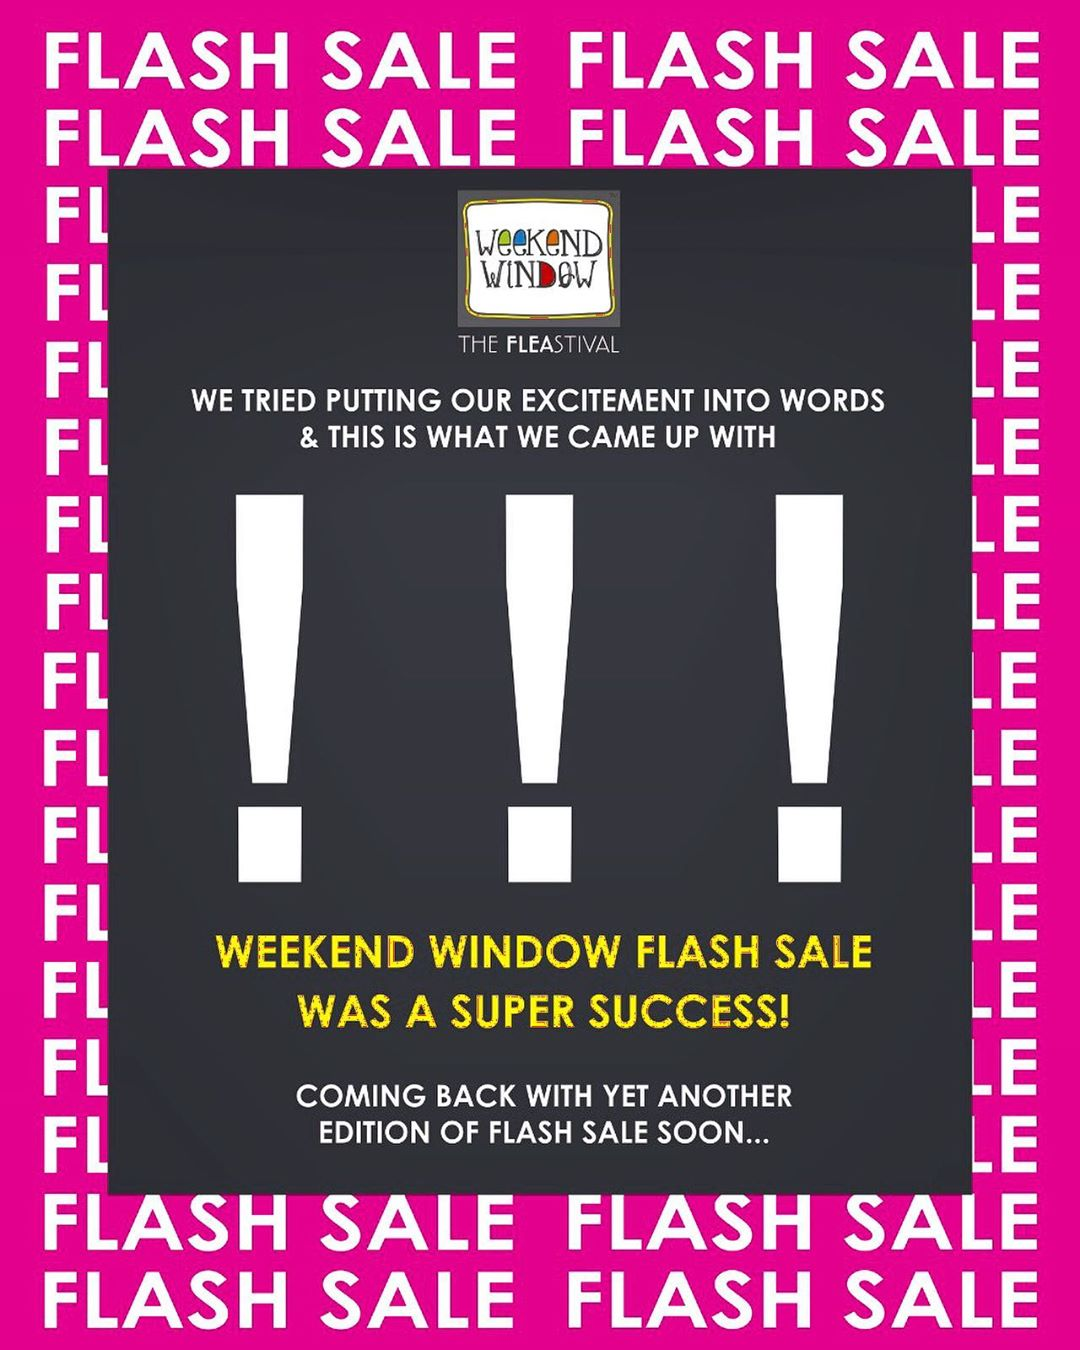 We are overwhelmed and how! THANK YOU AHMEDABAD!! 💕 . . . . #weekendwindow #flashsale #happiness #discounts #flat50 #crazyshopping #shoptillyoudrop #windowtohappiness